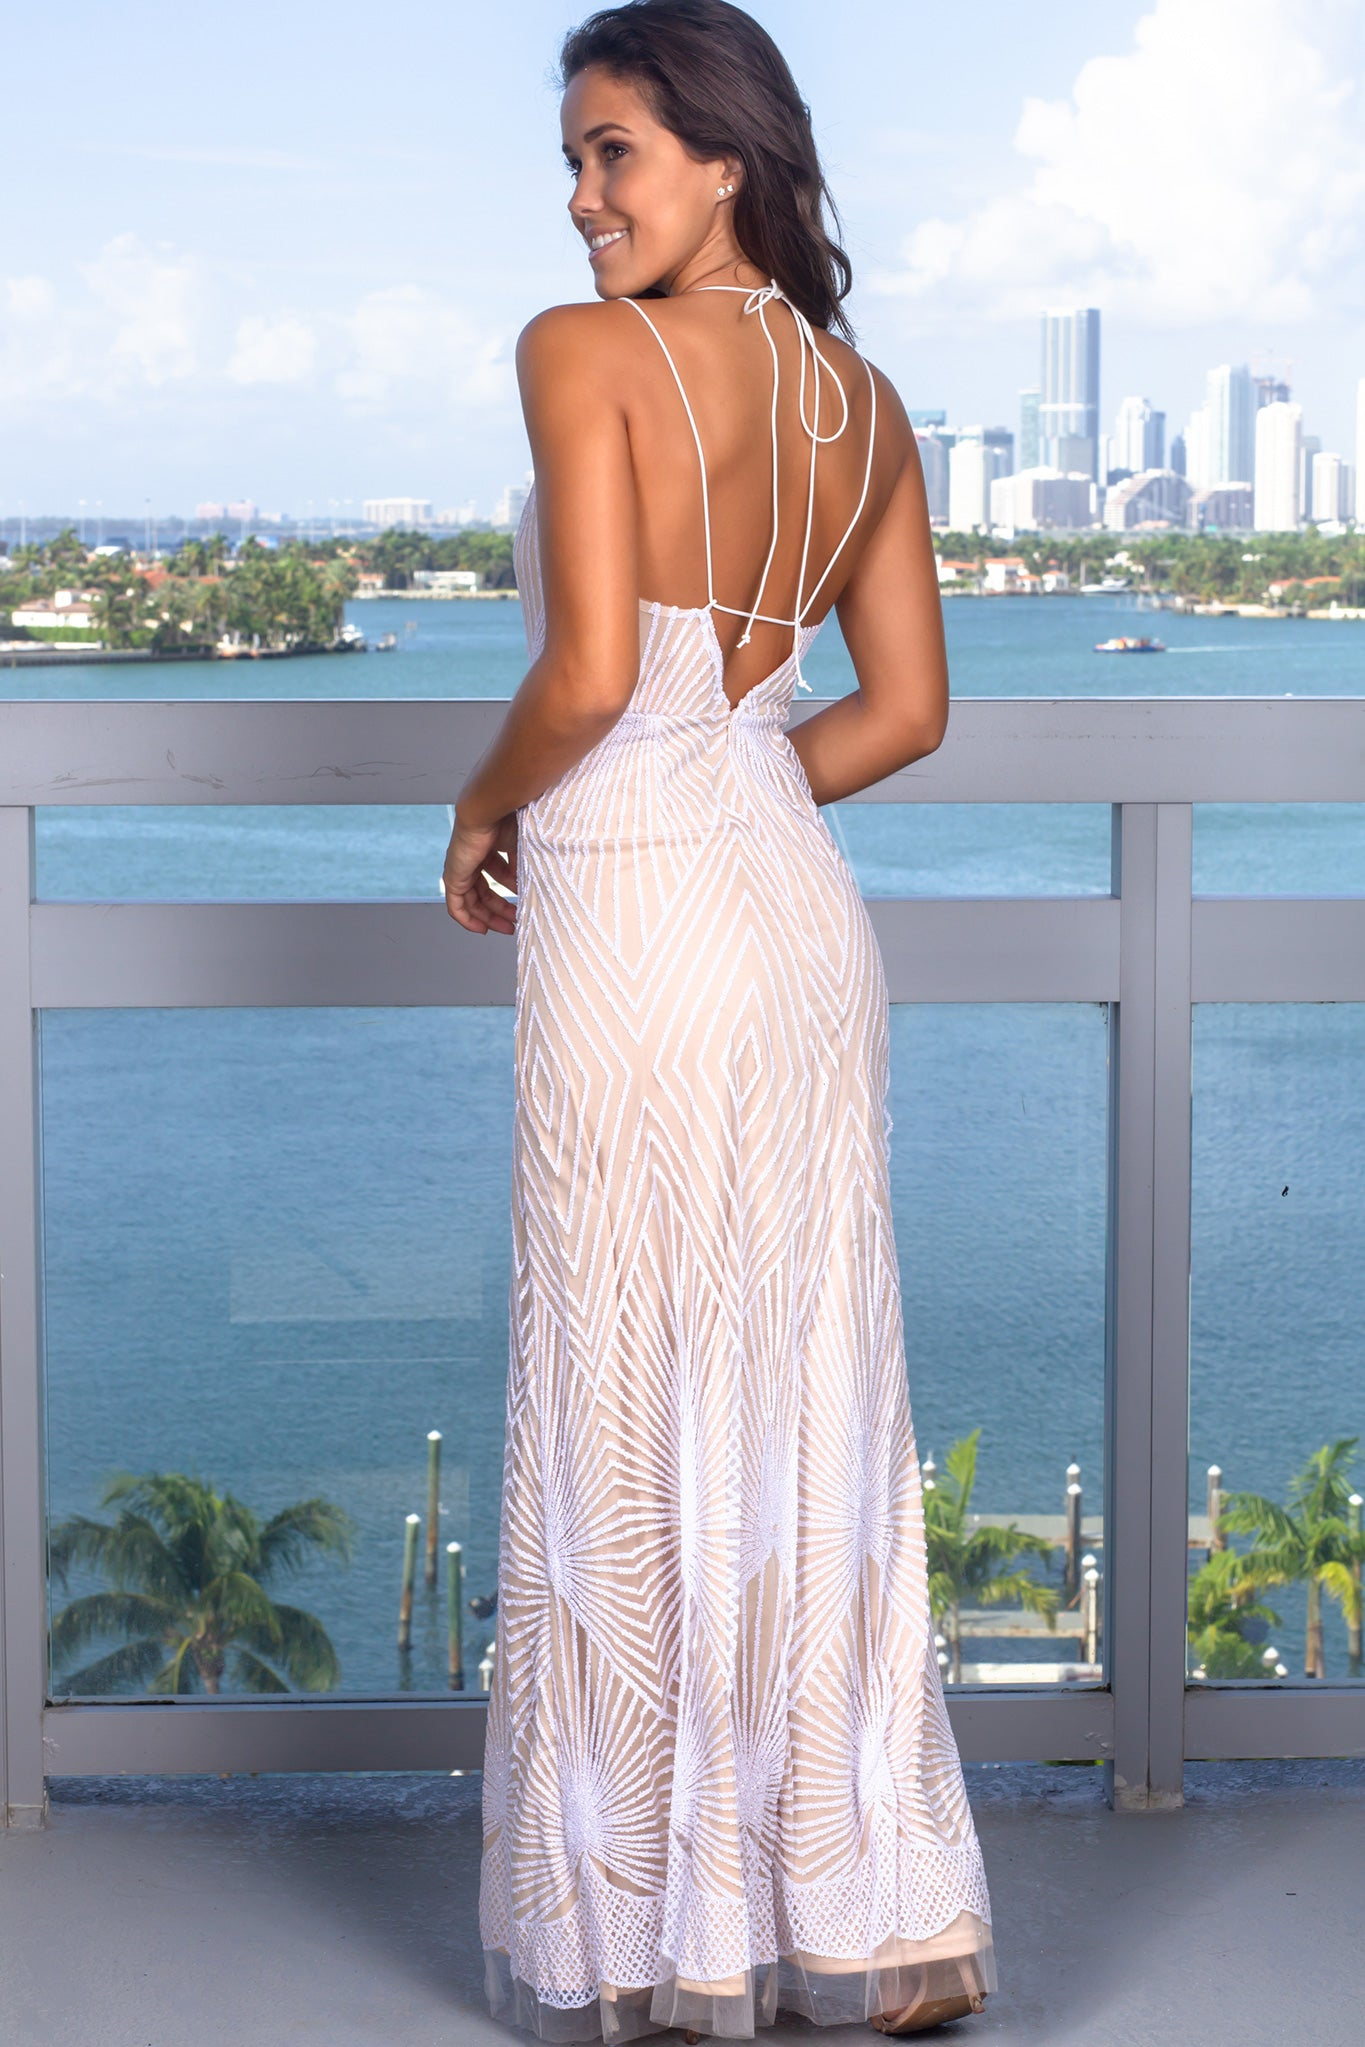 White and Nude Glitter Maxi Dress